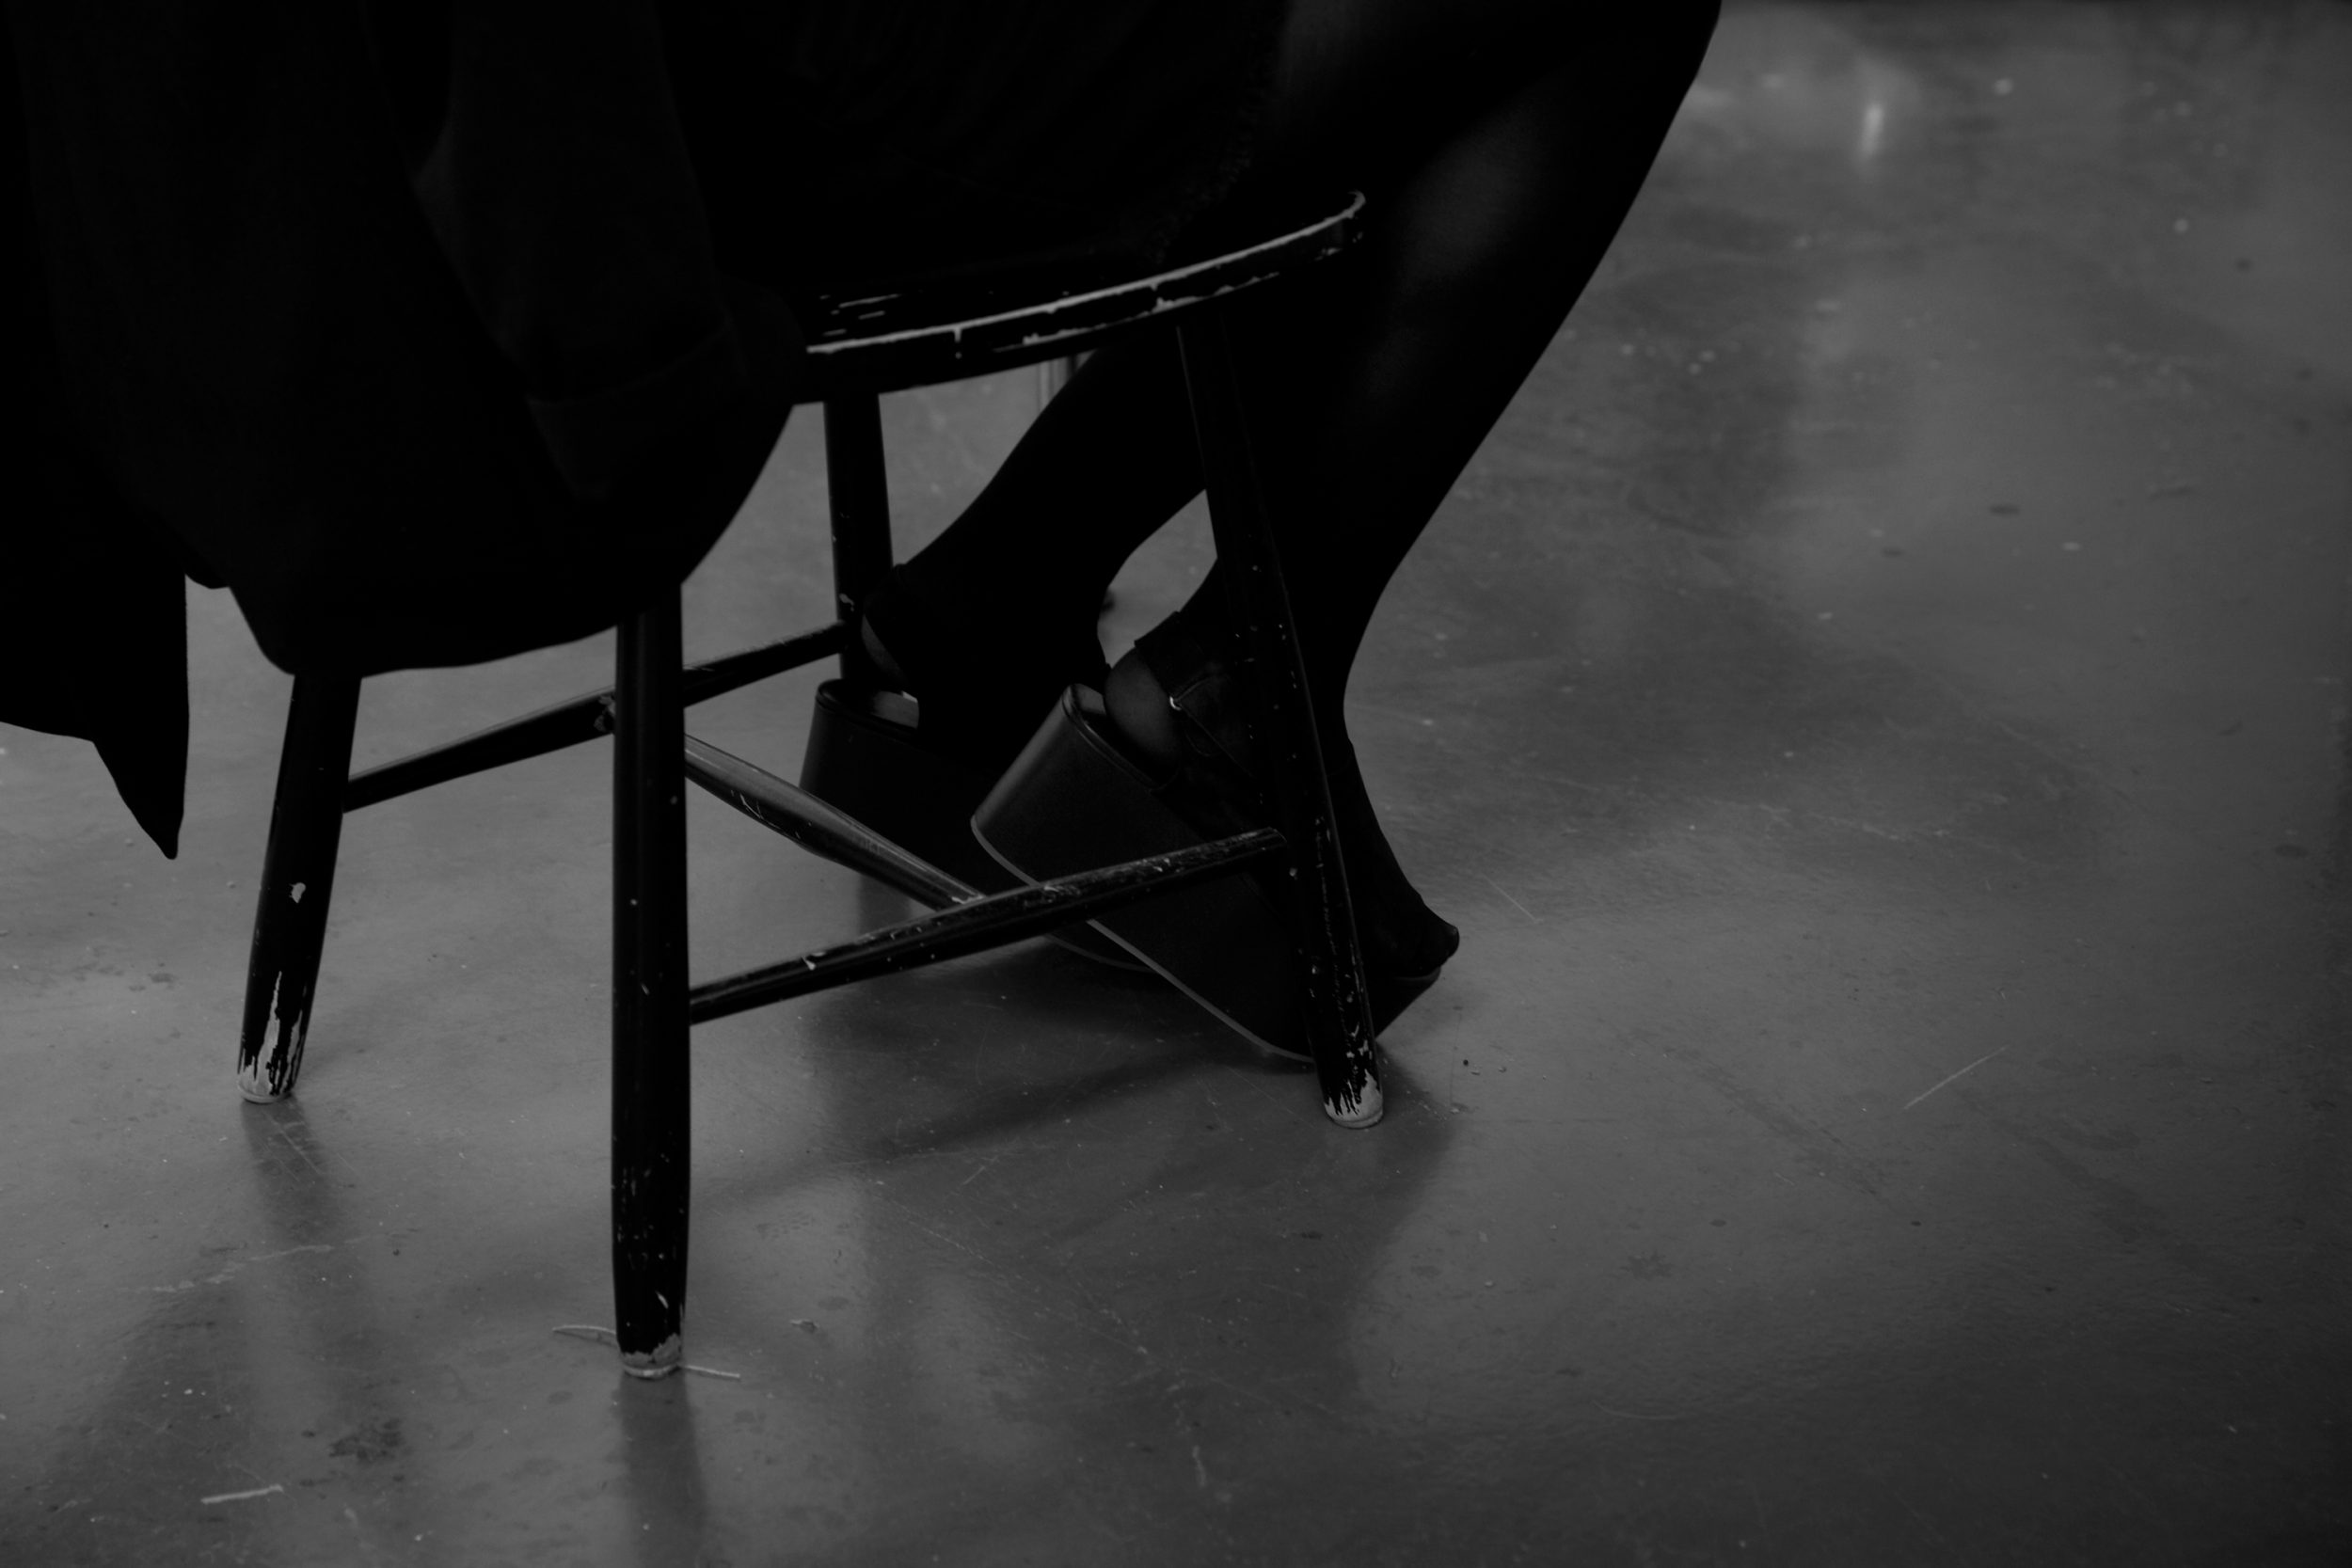 The black platform shoes of someone seated on a black wooden chair.